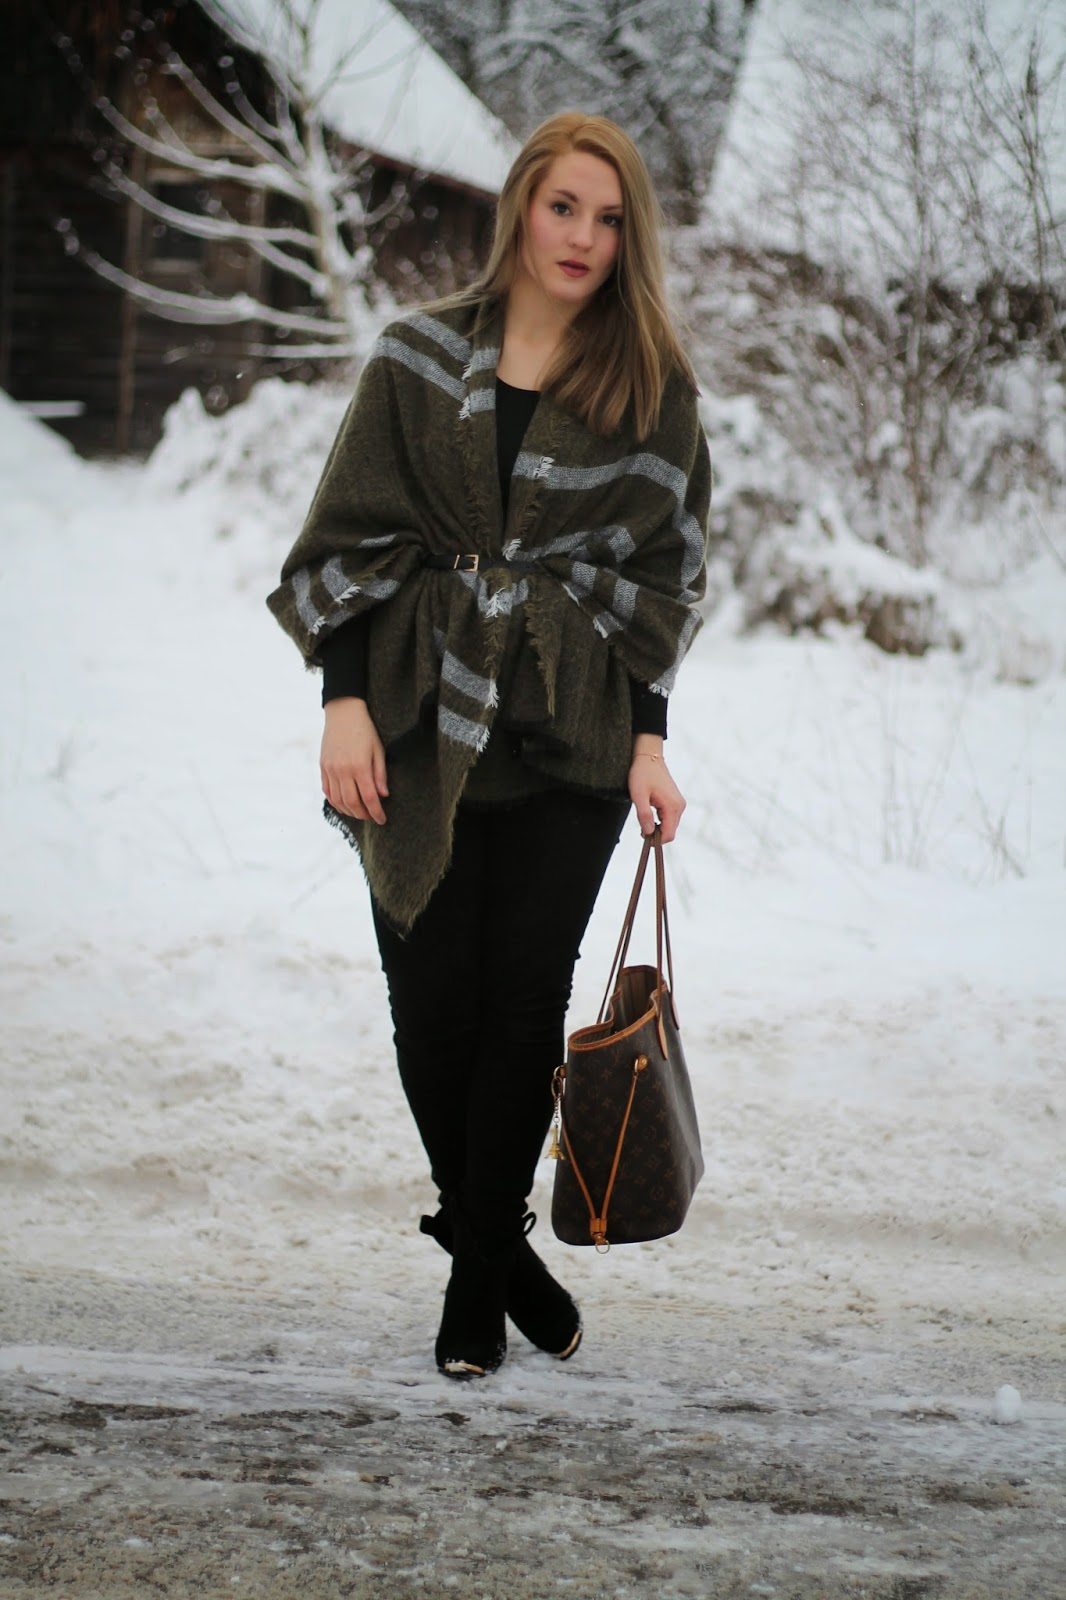 Fashionblogger Austria / Österreich / Deutsch / German / Kärnten / Carinthia / Klagenfurt / Köttmannsdorf / Winter Look / Classy / Edgy / Winter / WInter Style 2014 / Winter Look / Fashionista Look / Streetstyle Klagenfurt Vienna Wien Austria / /Winter Outfit / Cape Zara Oliv Grün Olive Scarf Blogger Must Have / Louis Vuitton Neverfull MM Monogram Canvas / Zara Jeans Black Skinny Schwarze Röhrenhose / Xenox Jewelry / Ann Chrstine Boots schwarze Heels Black Heels /